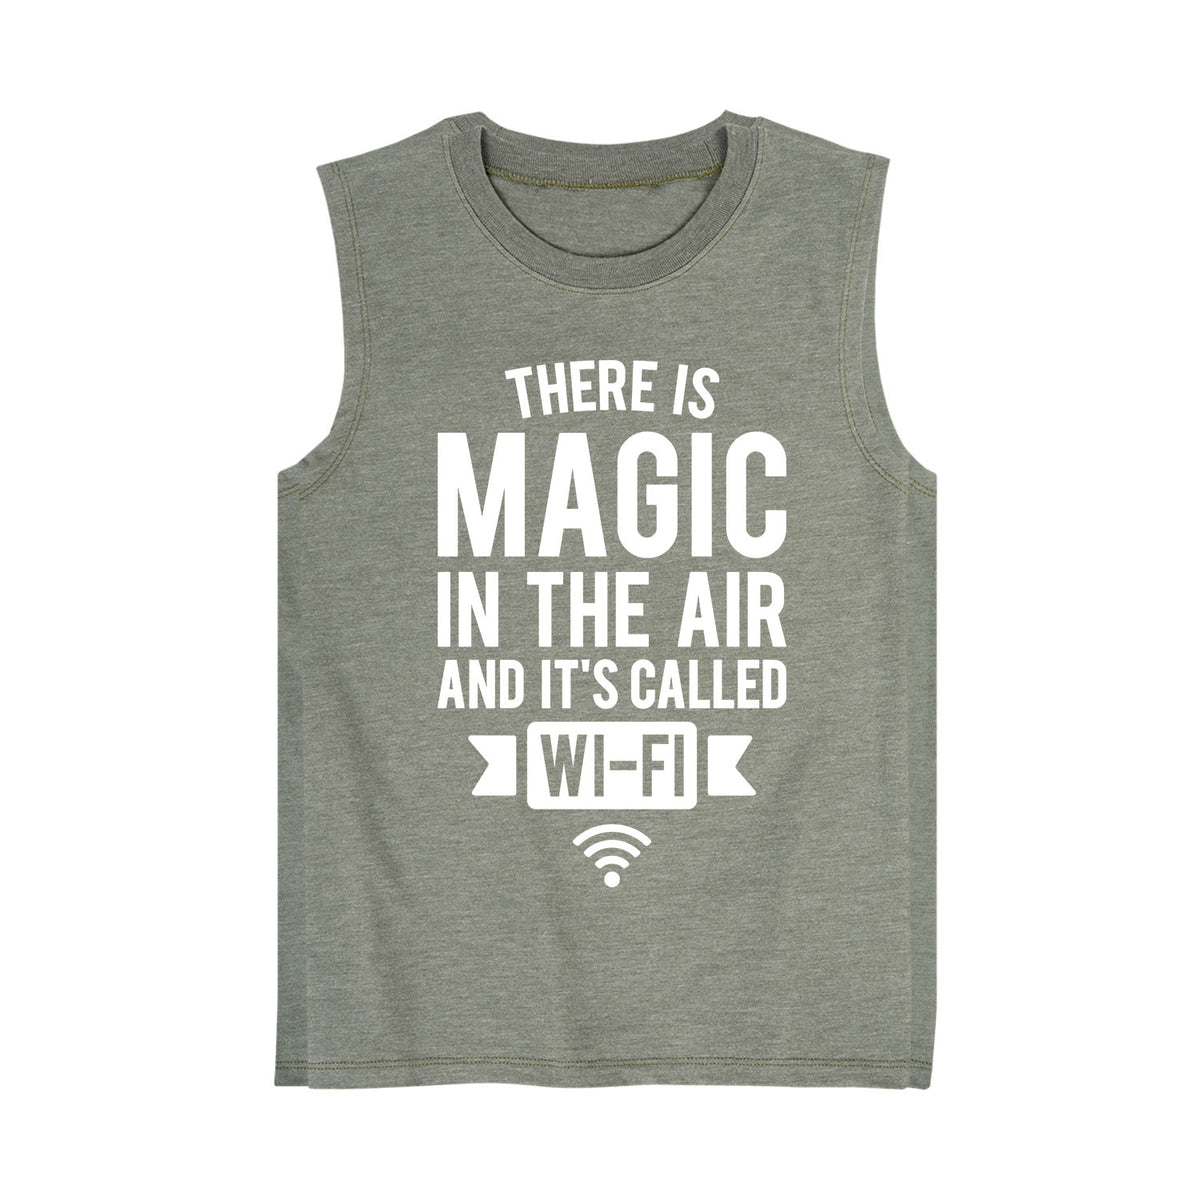 There is Magic in the Air and Its Called WIFI - Youth Tank Top